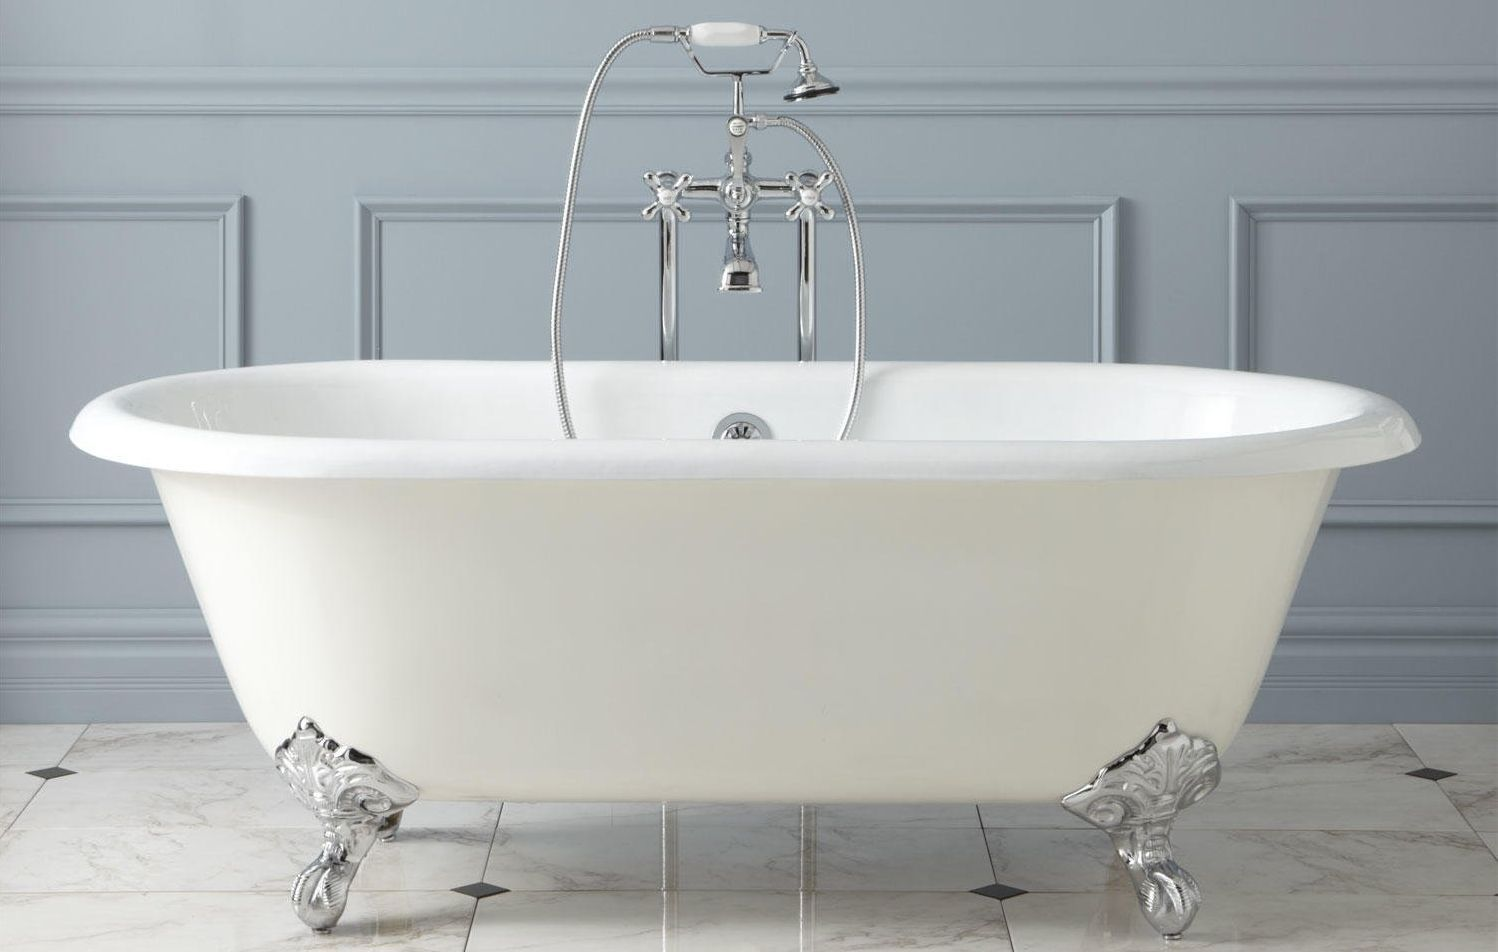 Most Bathtubs Are One of These Four  Bathtub Sizes Reference Guide to Common Tubs